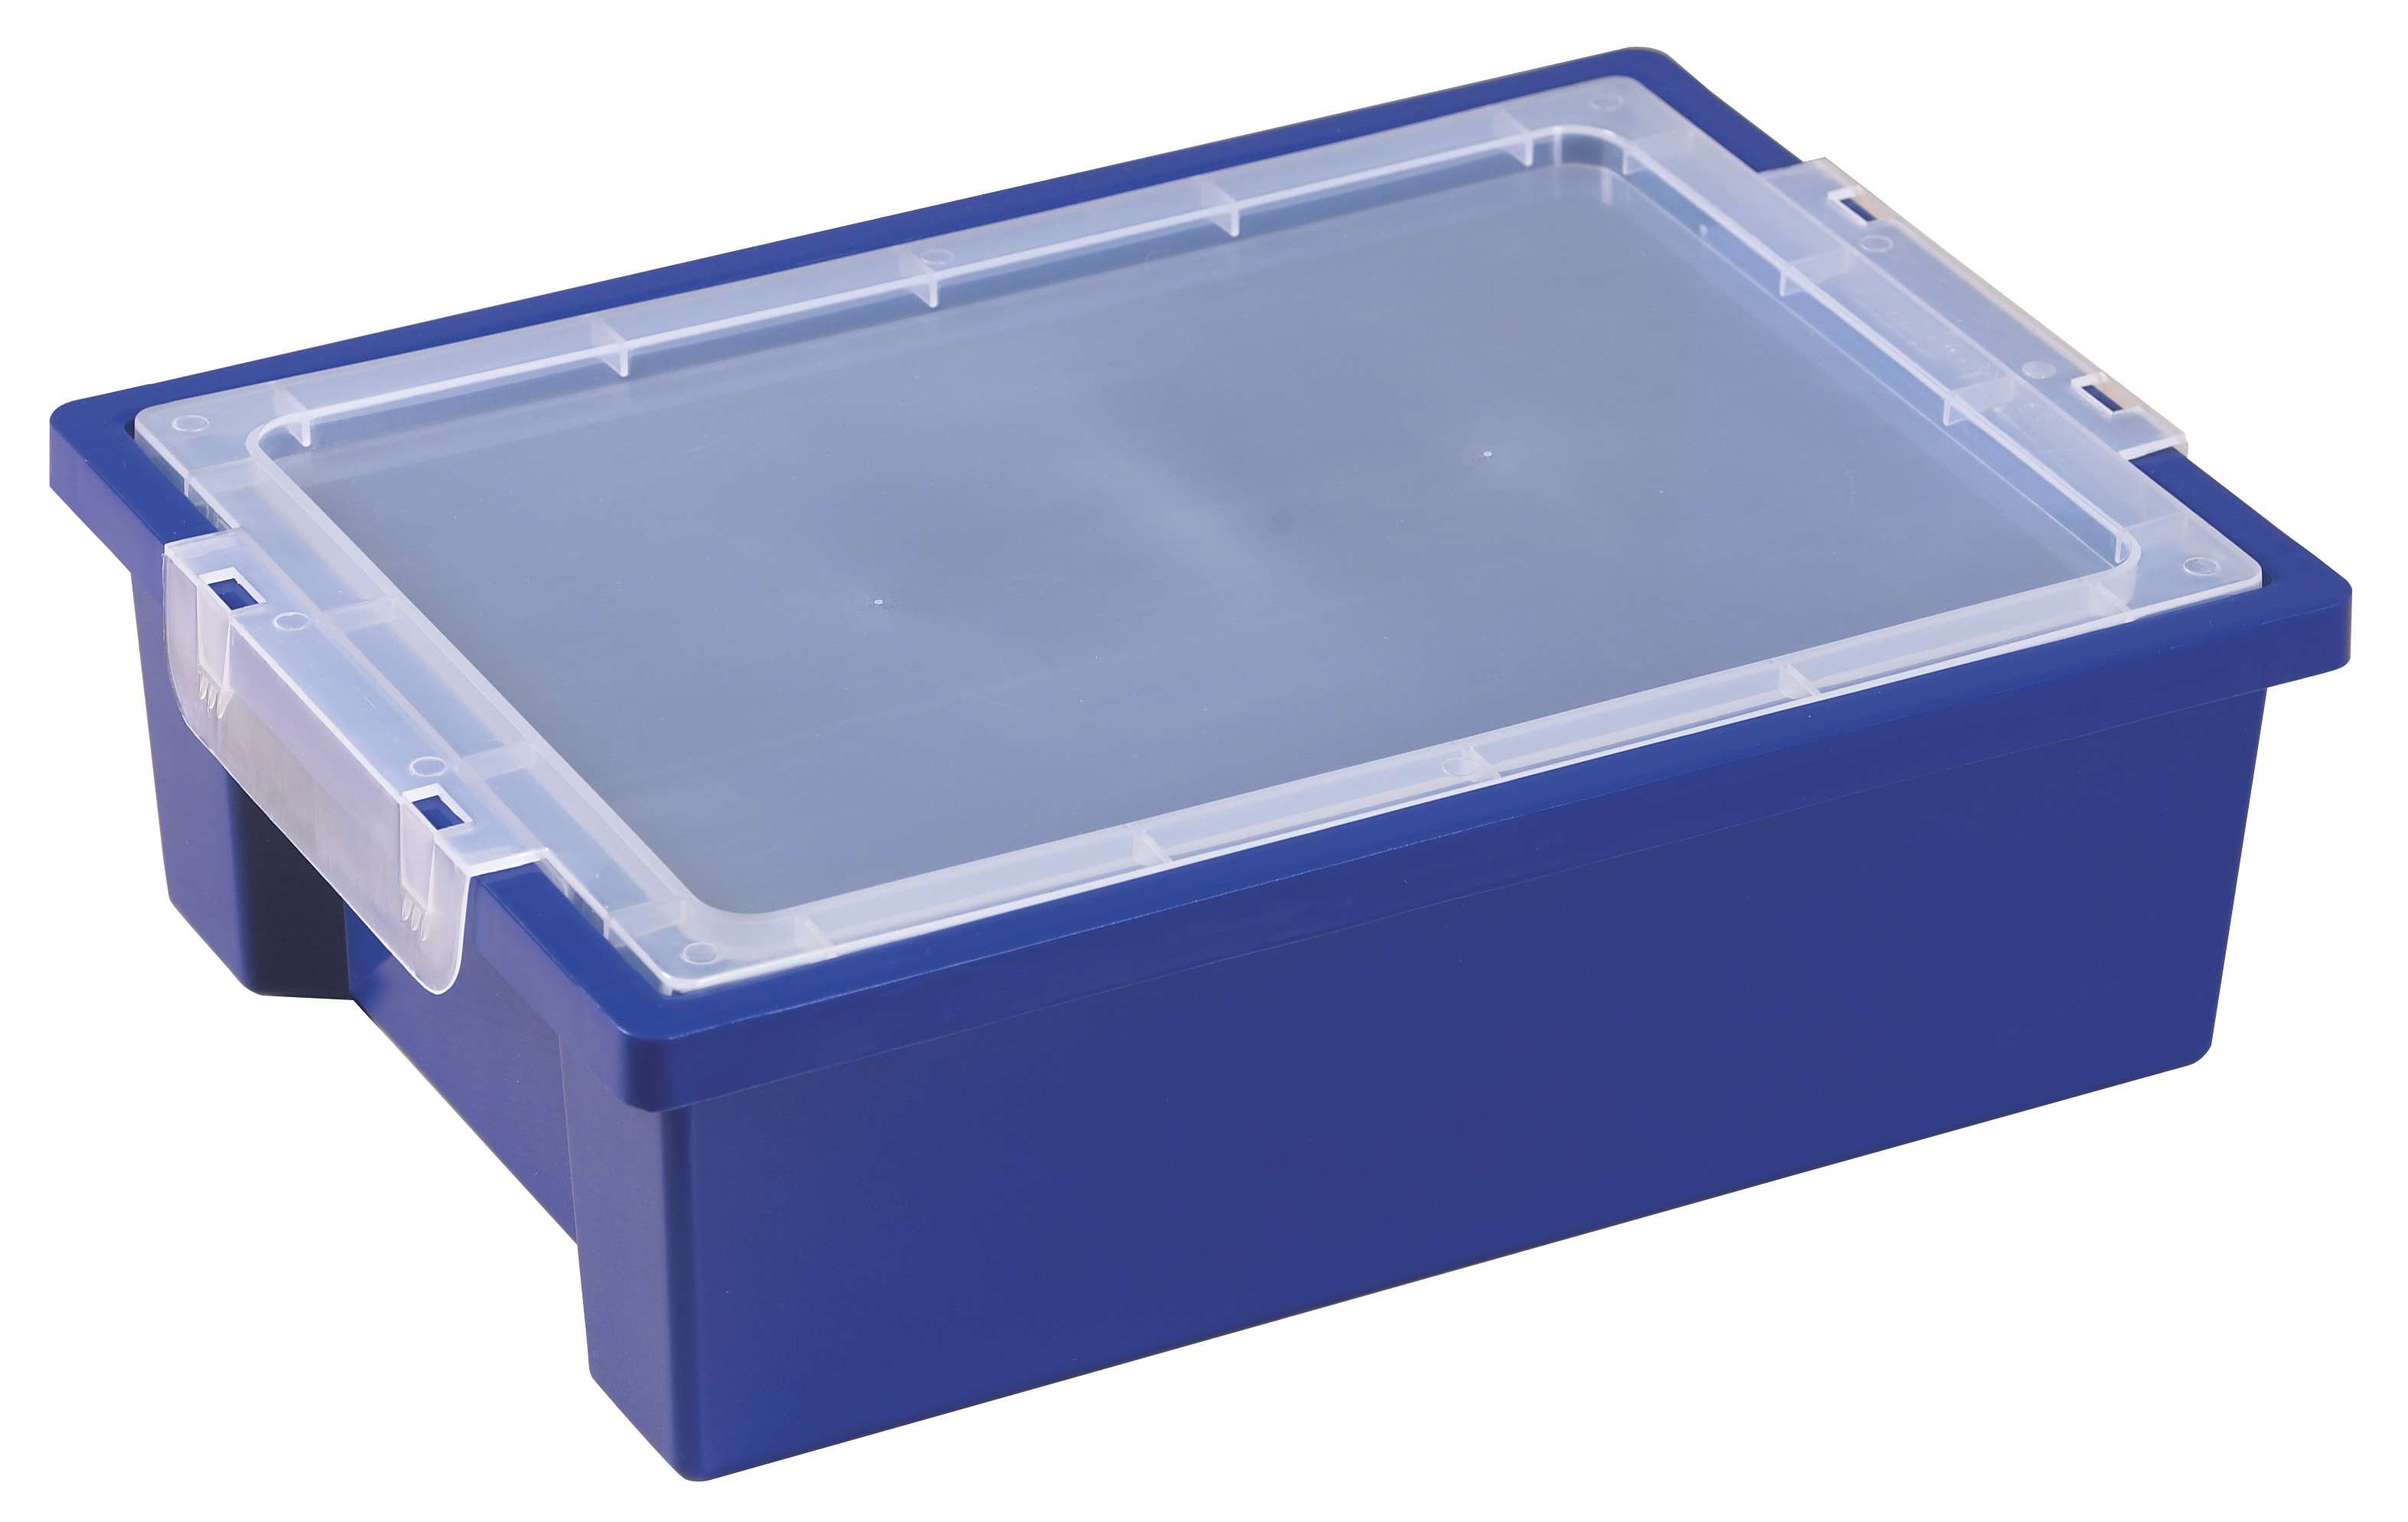 Small Storage Bins with Lid - Blue - Set of 6